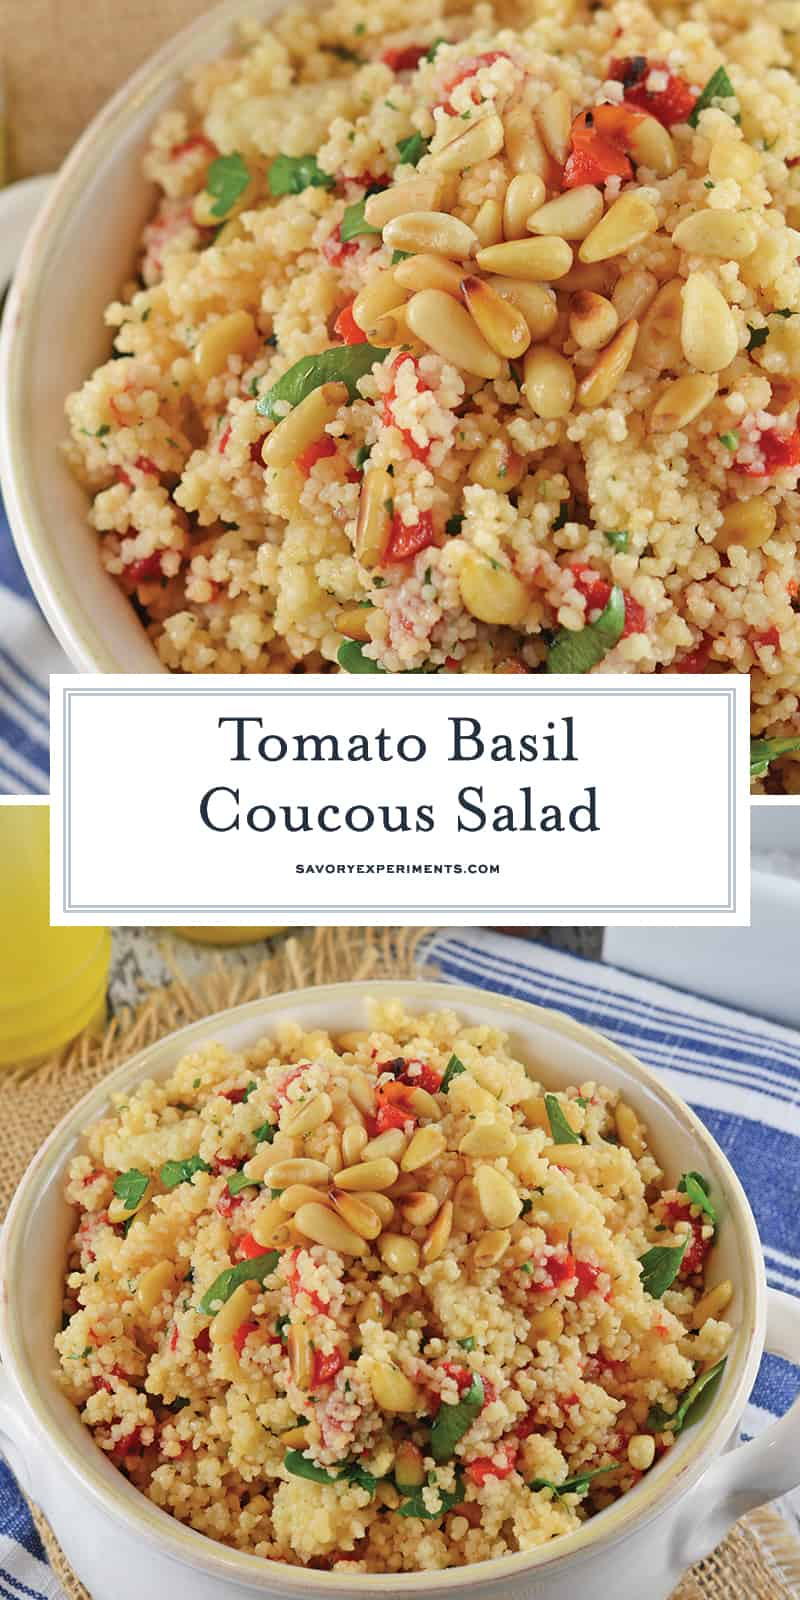 My Tomato Basil Couscous Salad is a great way to liven up any meal. Simple to make and full of flavor, your family will love it! #tomatobasilcouscoussalad #tomatobasil #couscous www.savoryexperiments.com